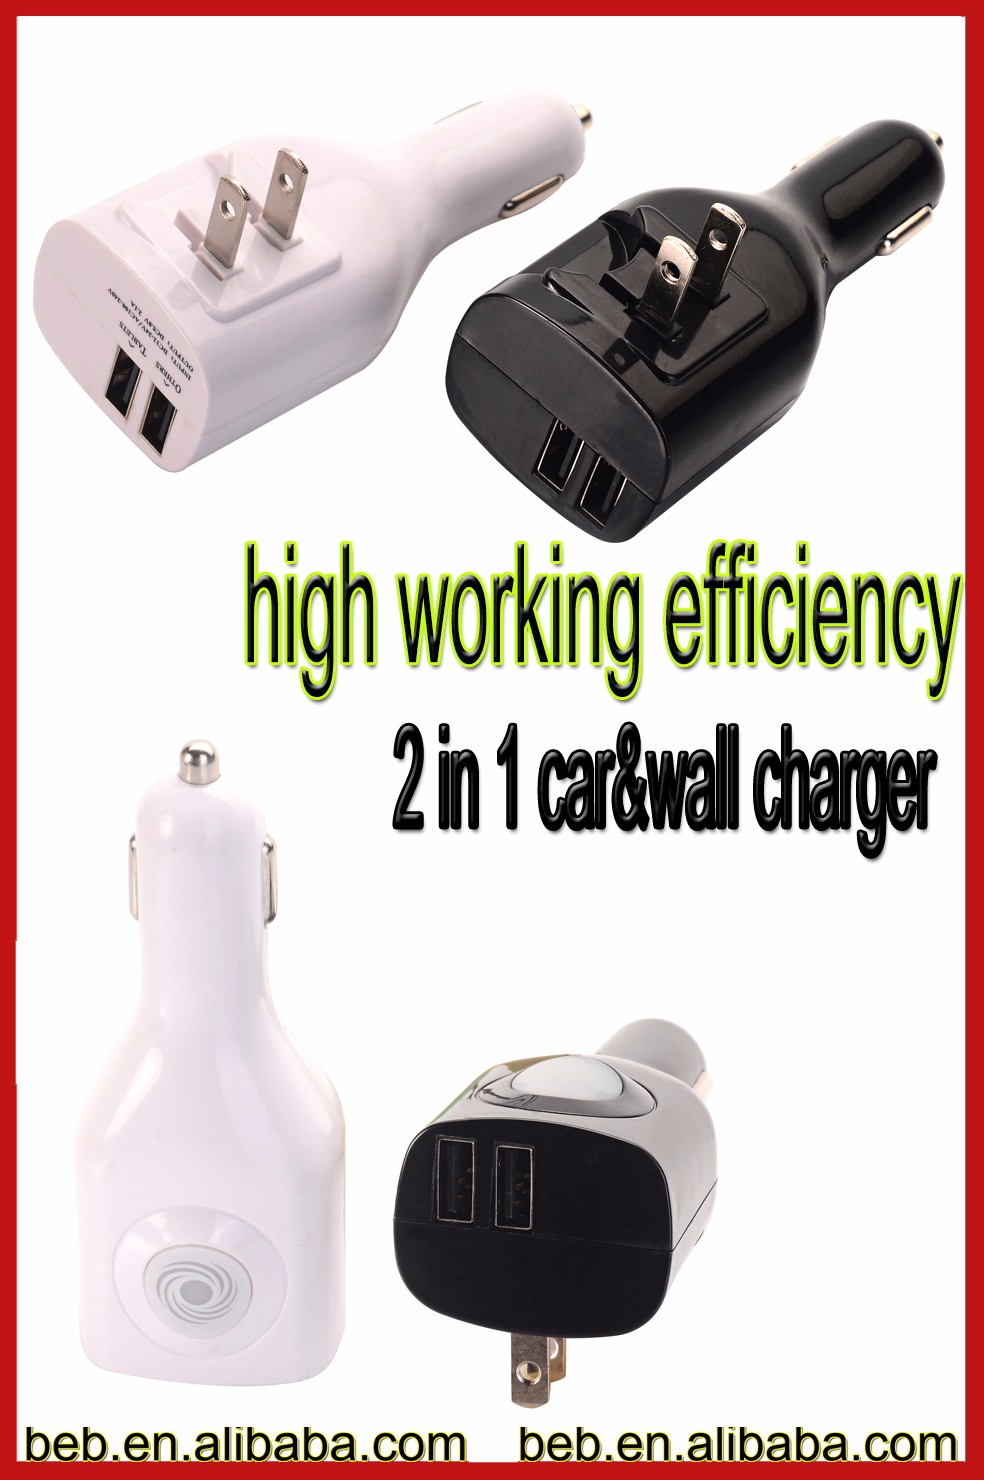 VI efficiency 2 in 1 car wall charger for iphone samsung usb wall and car charger on promotion